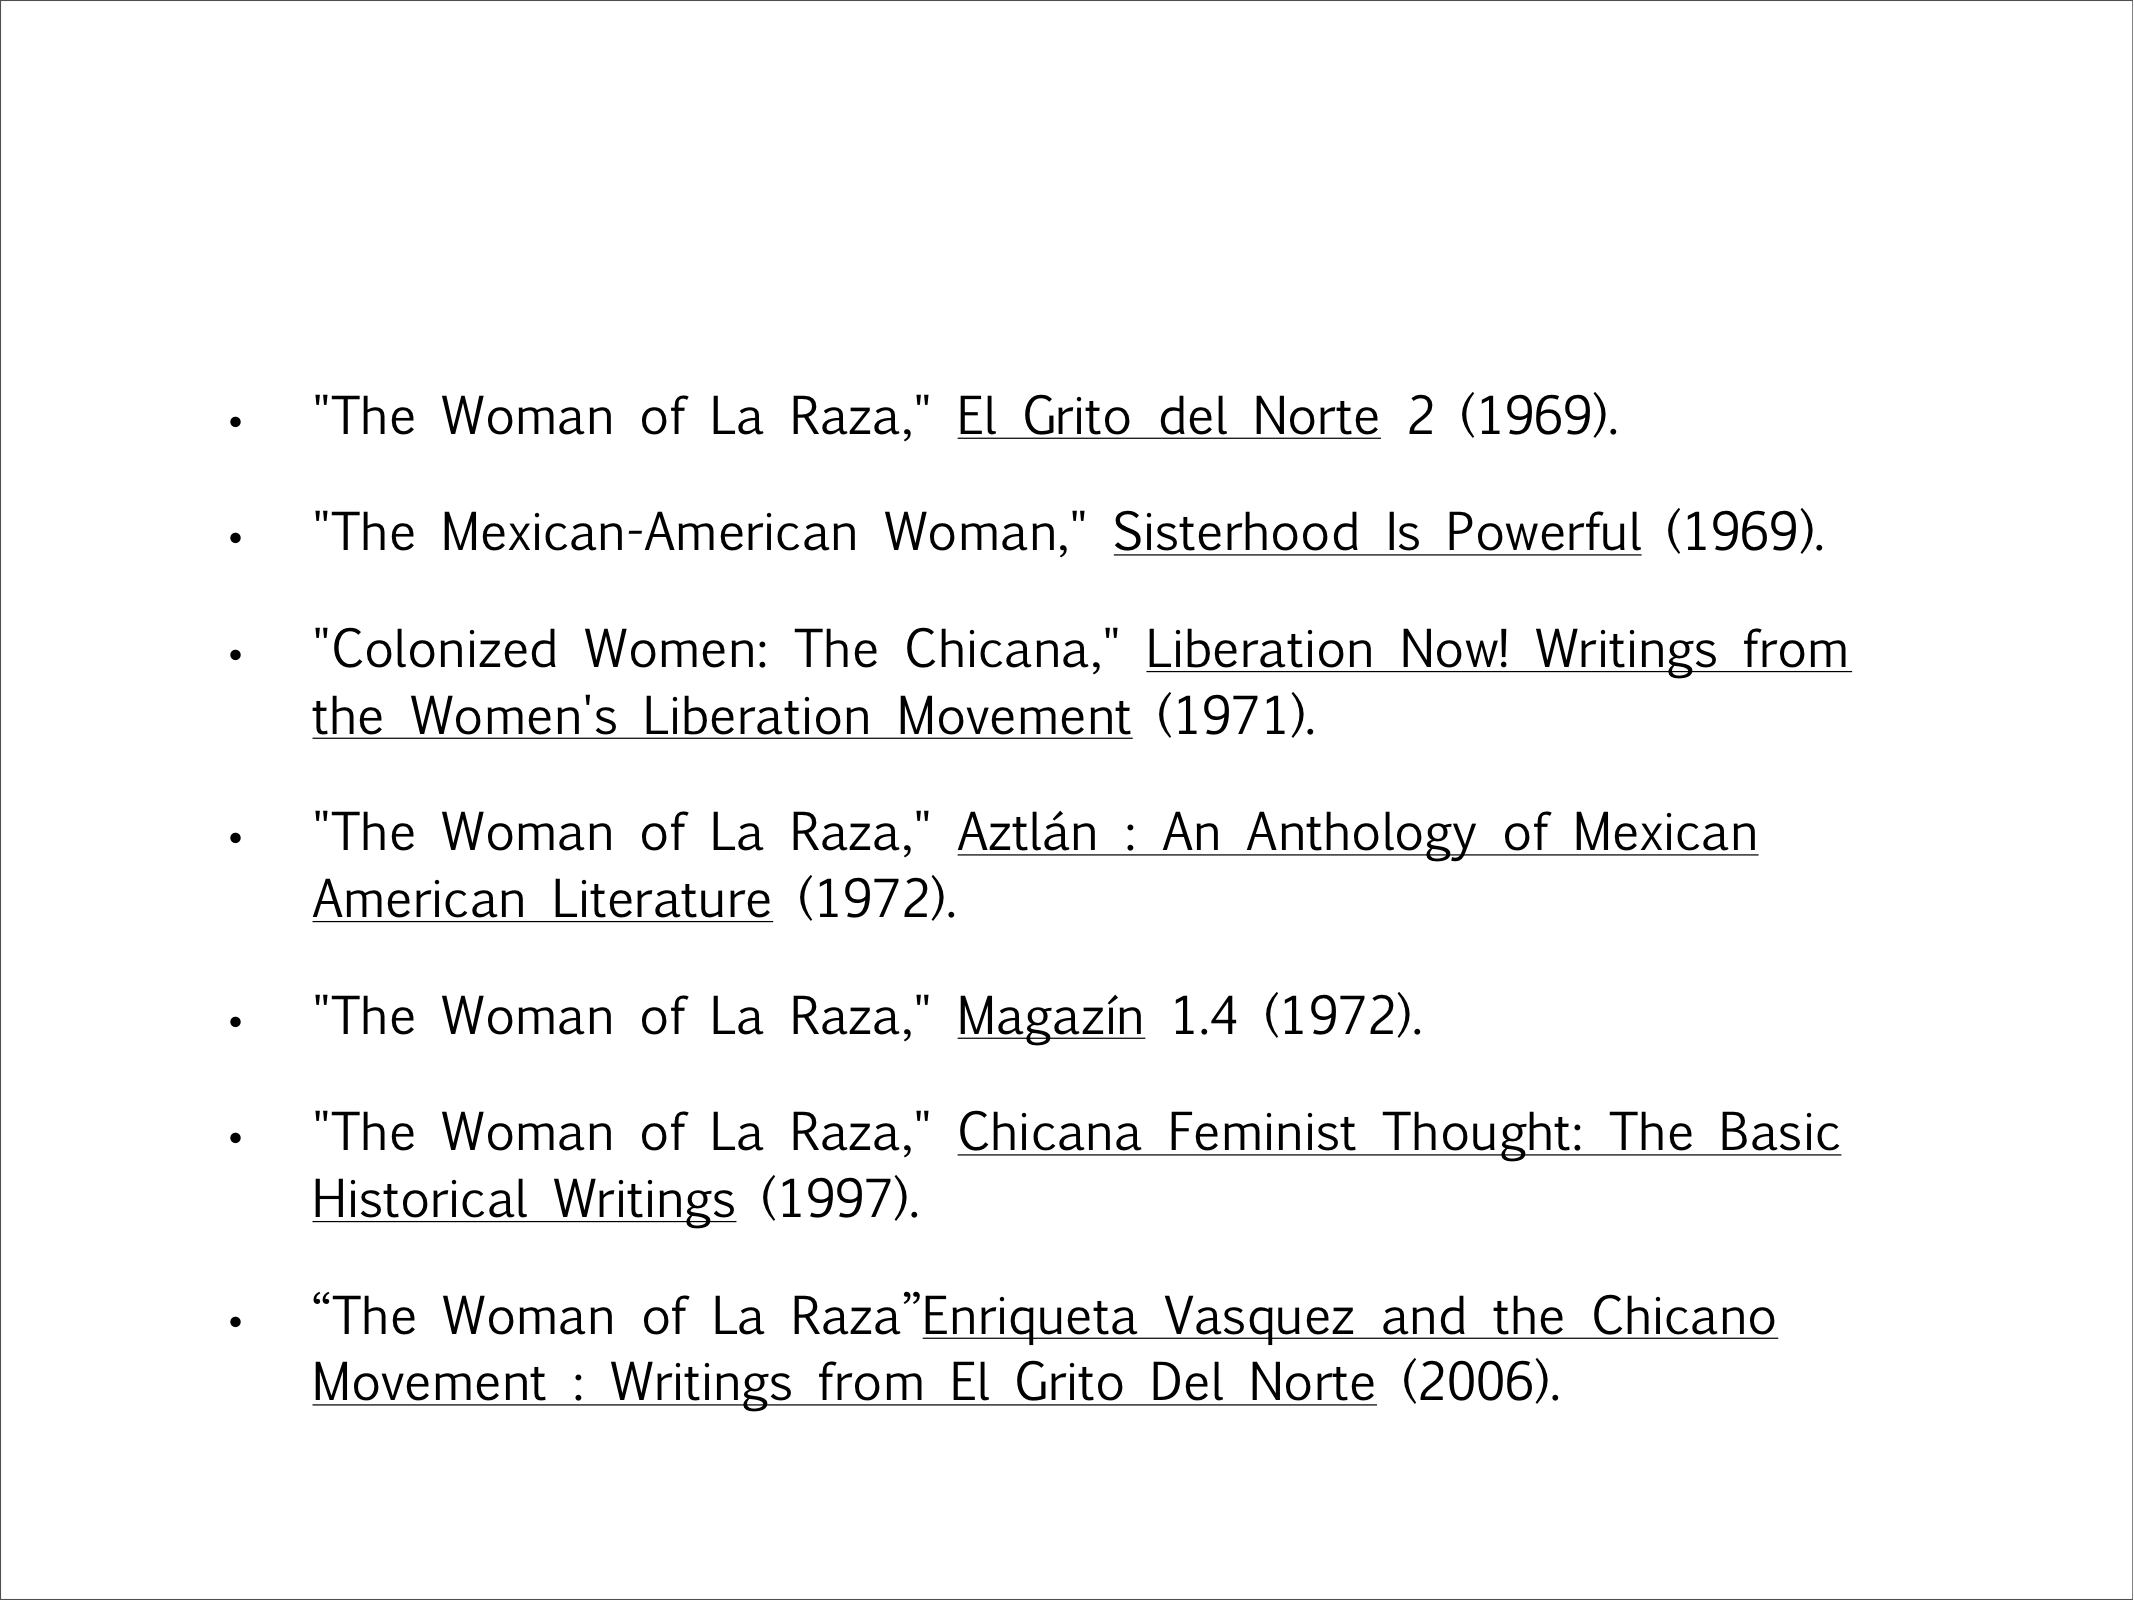 malcs institute paper the case of the second chicana annemarie on those terms enriqueta vaacutesquez s variously titled article can be counted as one of the most influential essays of the chicano movement